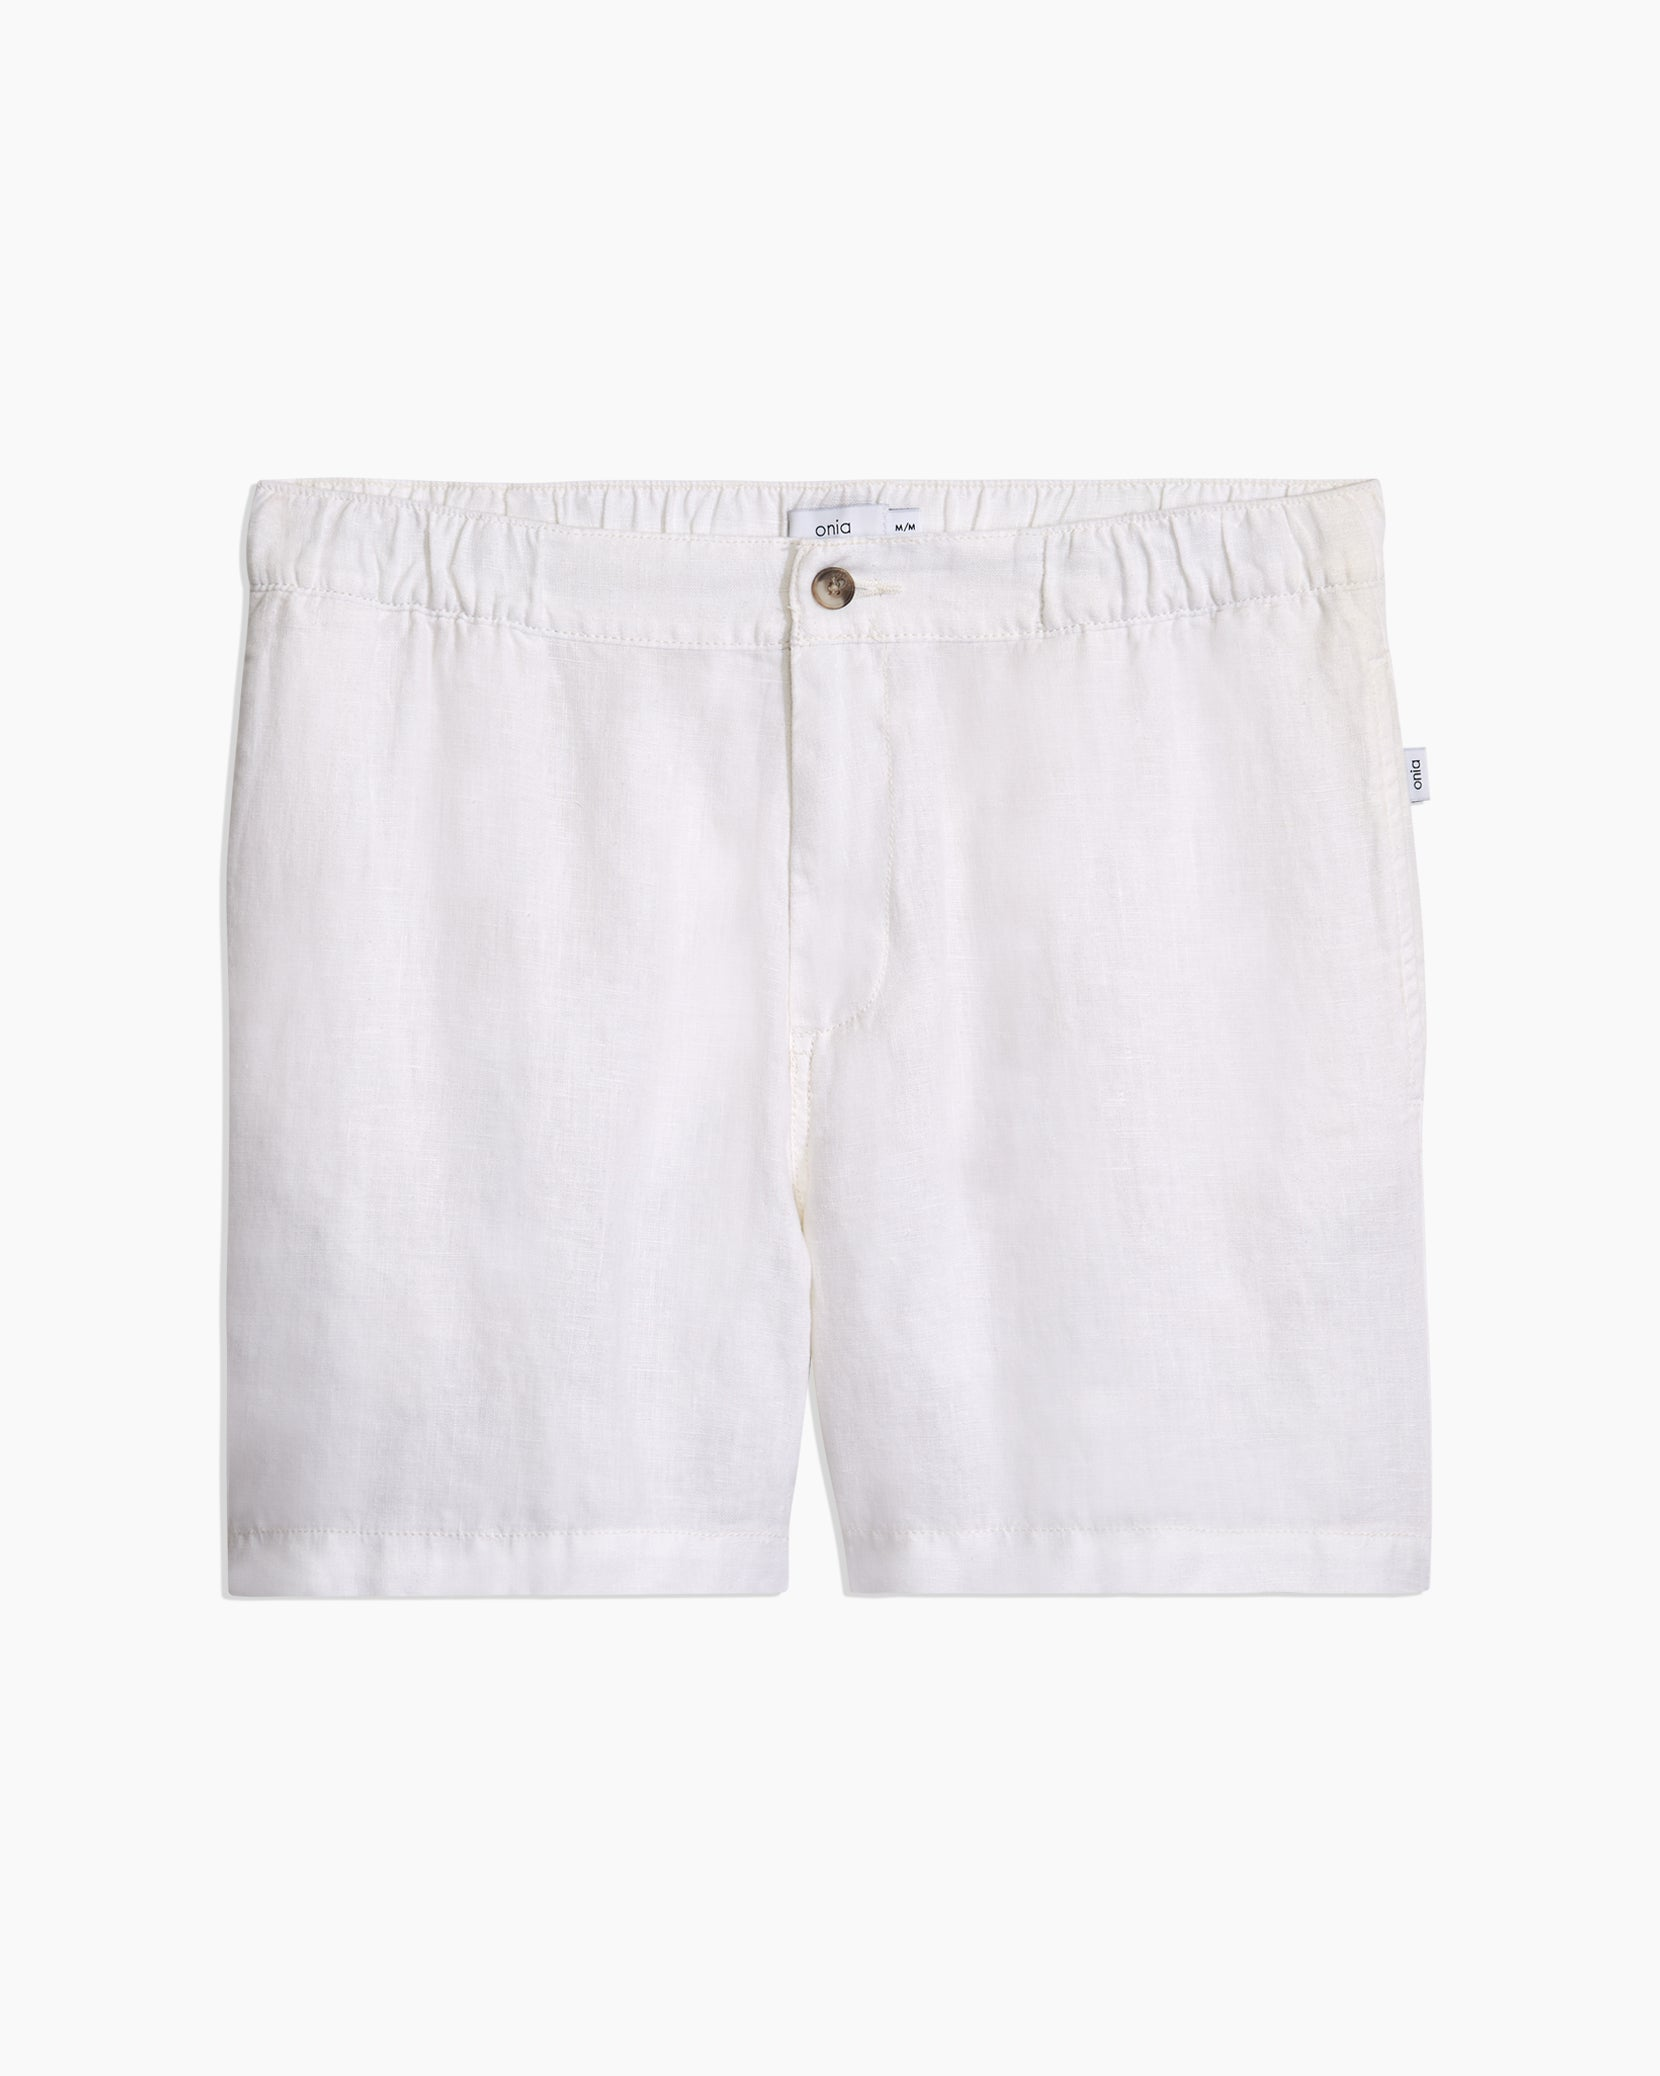 Moe Linen Shorts in White - 11 - Onia